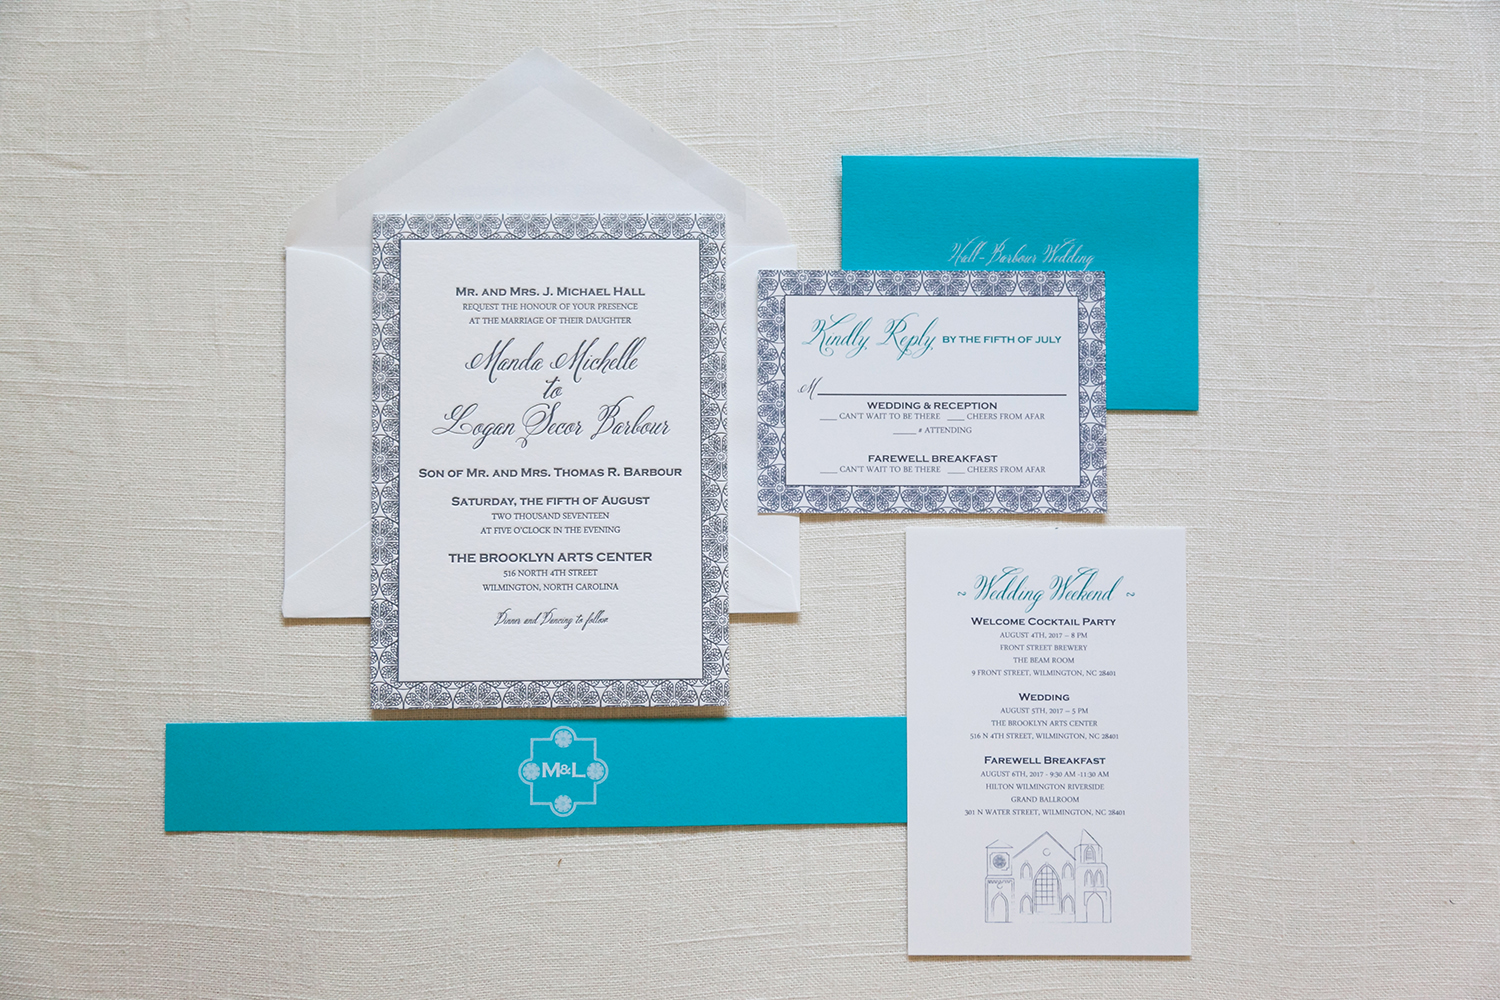 wilmington wedding invitation - Wedding Invitations, Charleston ...